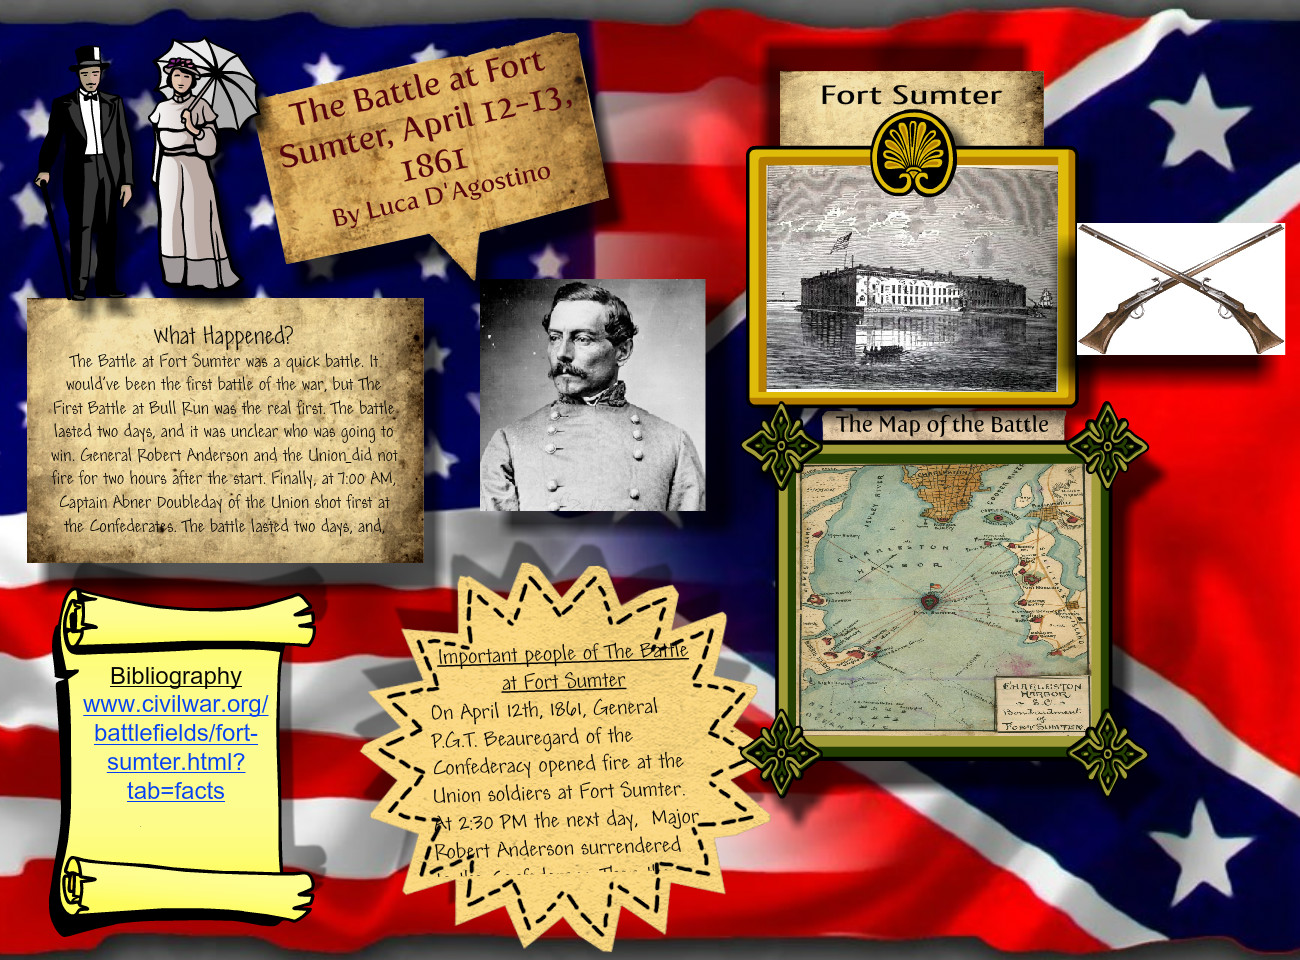 The Battle at Fort Sumter